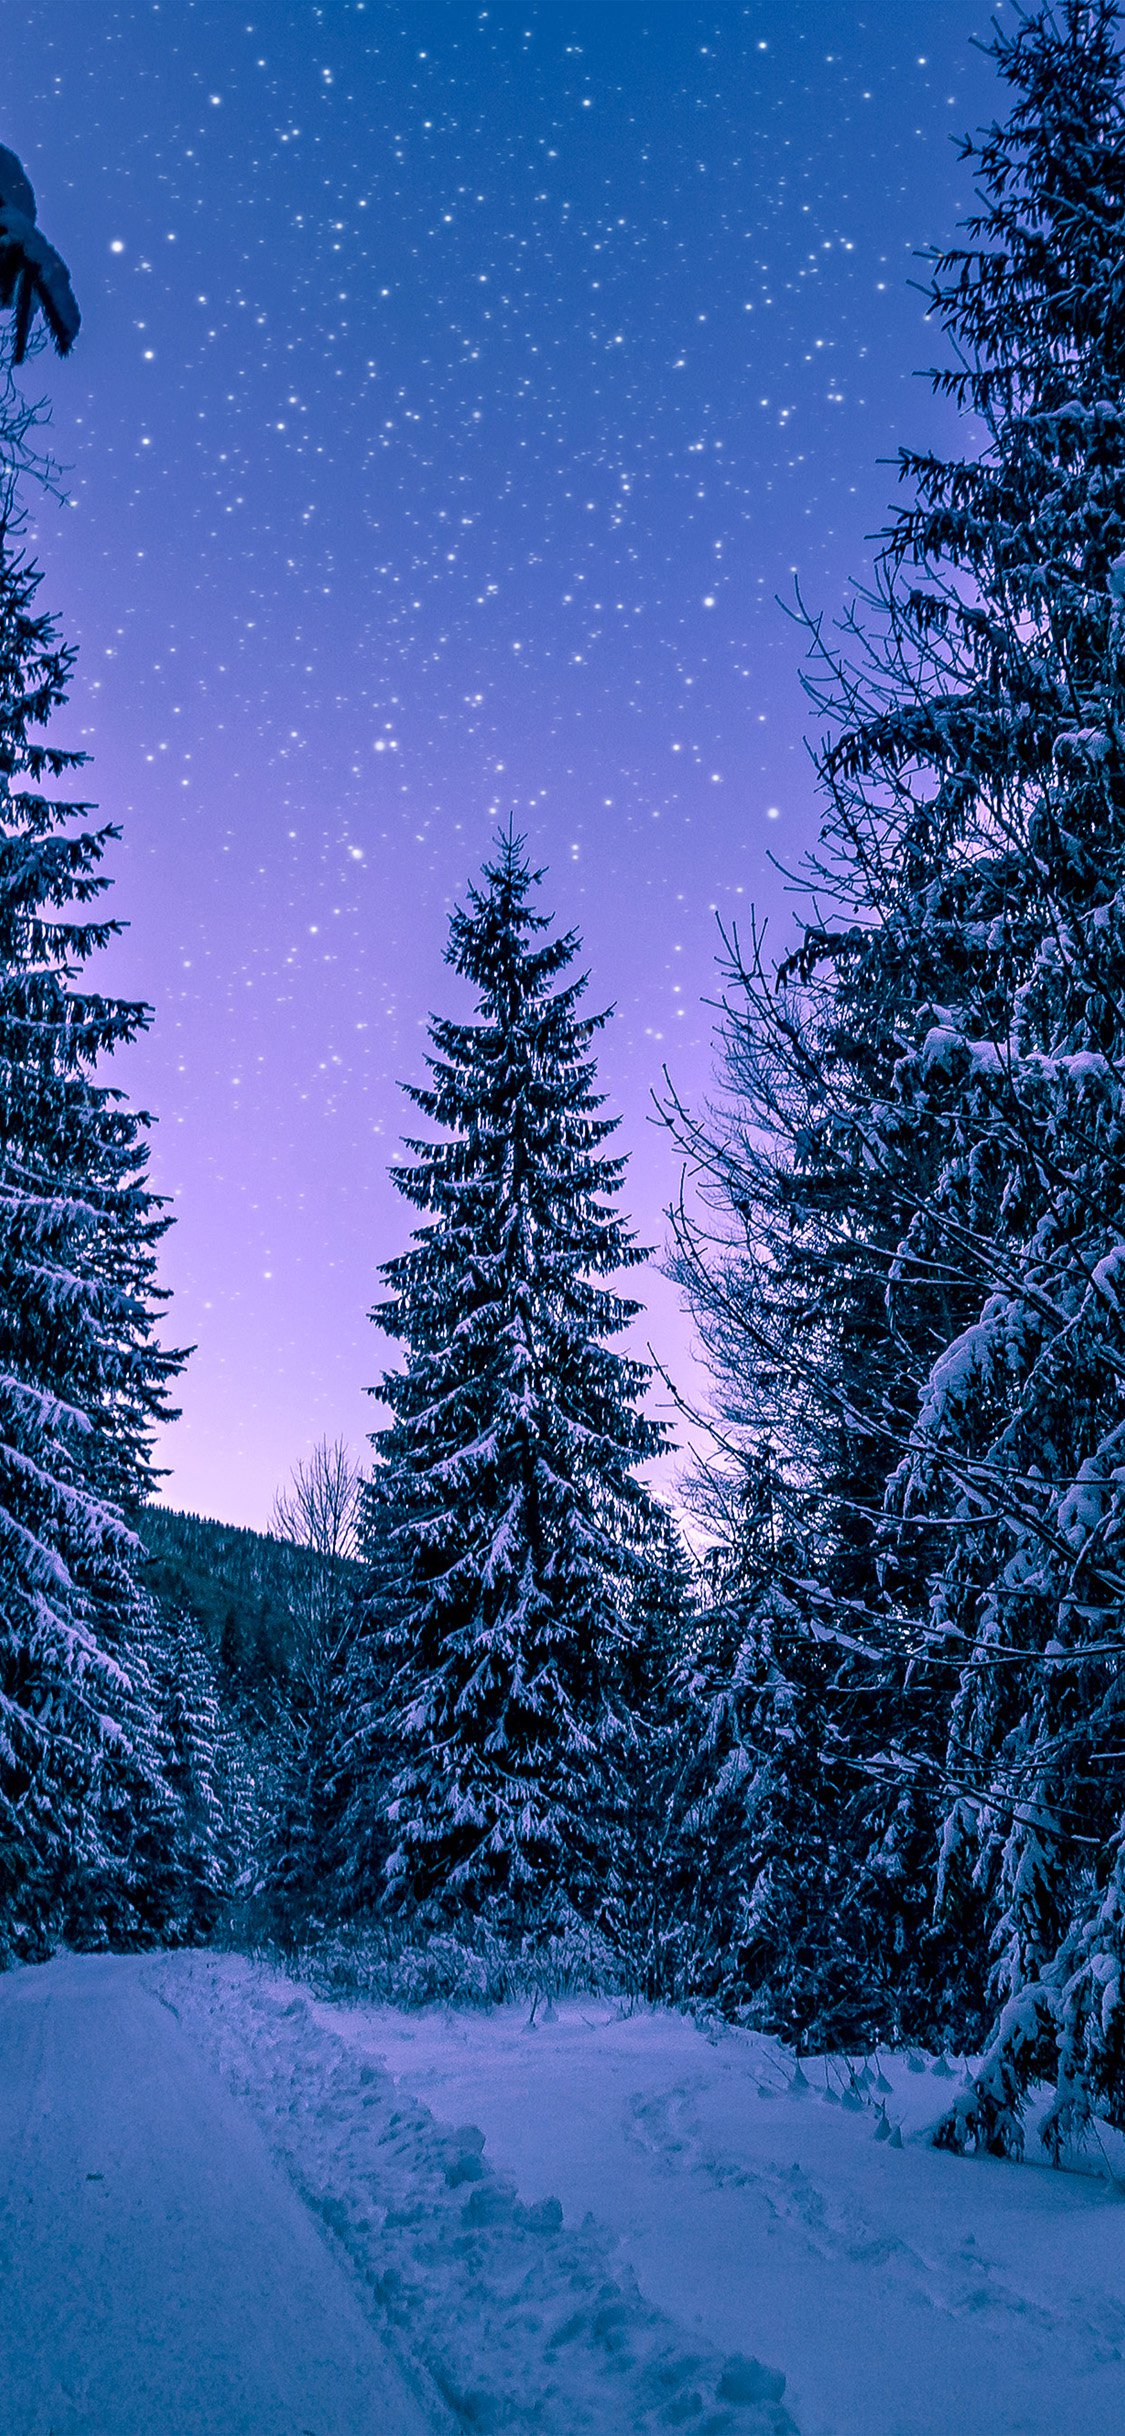 4k Winter Wallpapers For Iphone Ipad Or Macbook